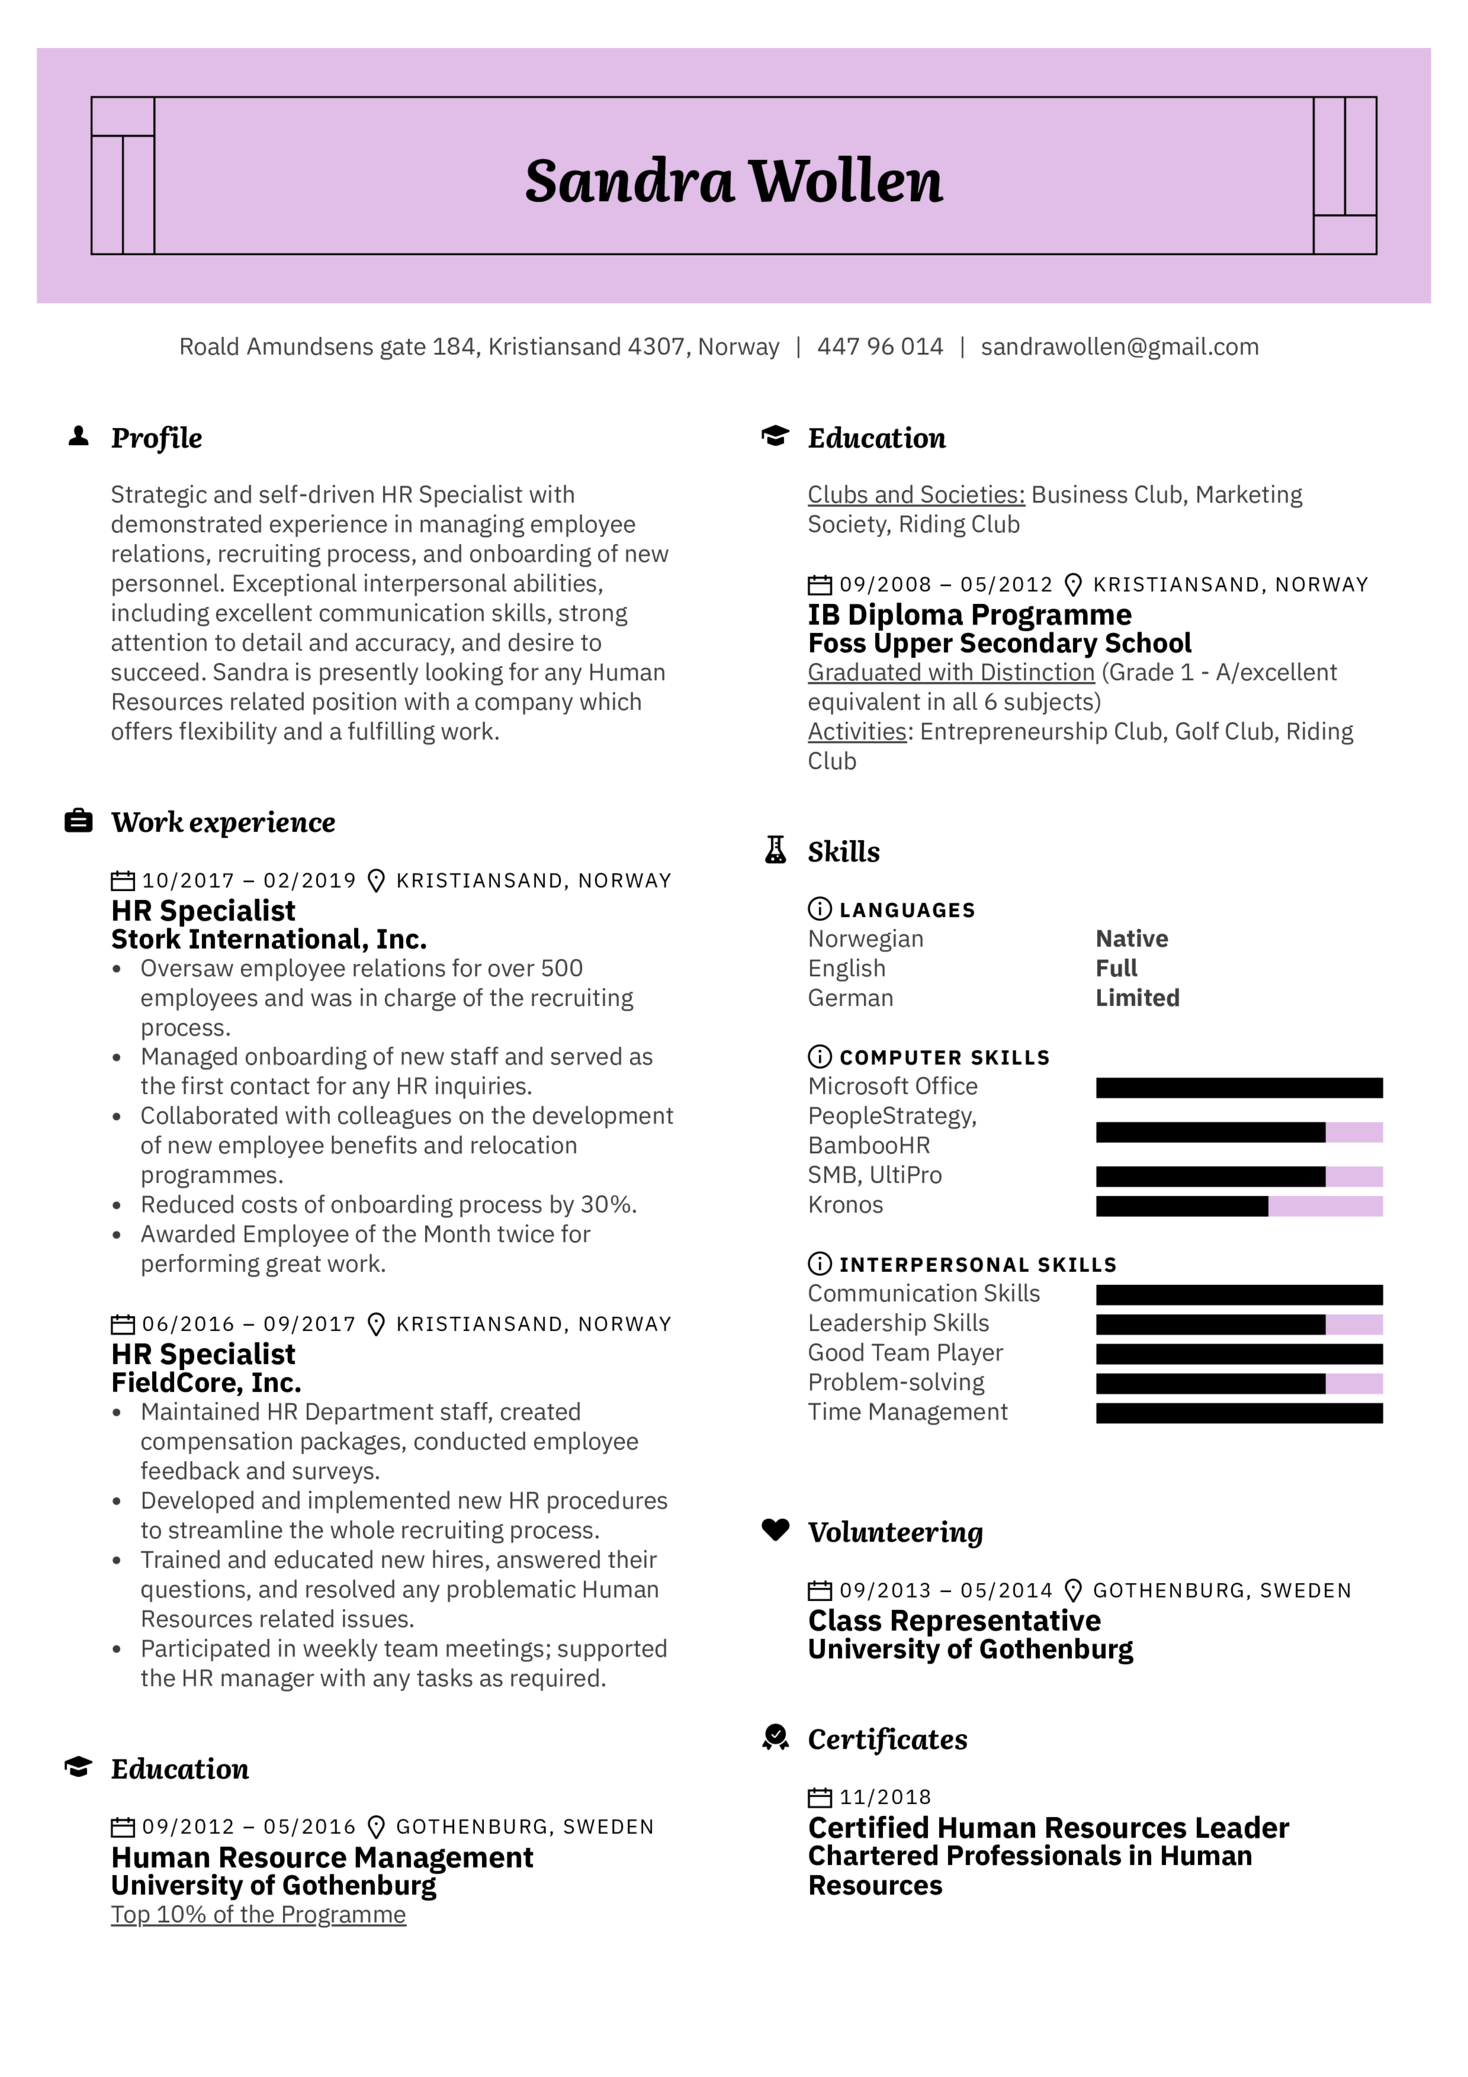 Human Resources Resume Template (Teil 1)